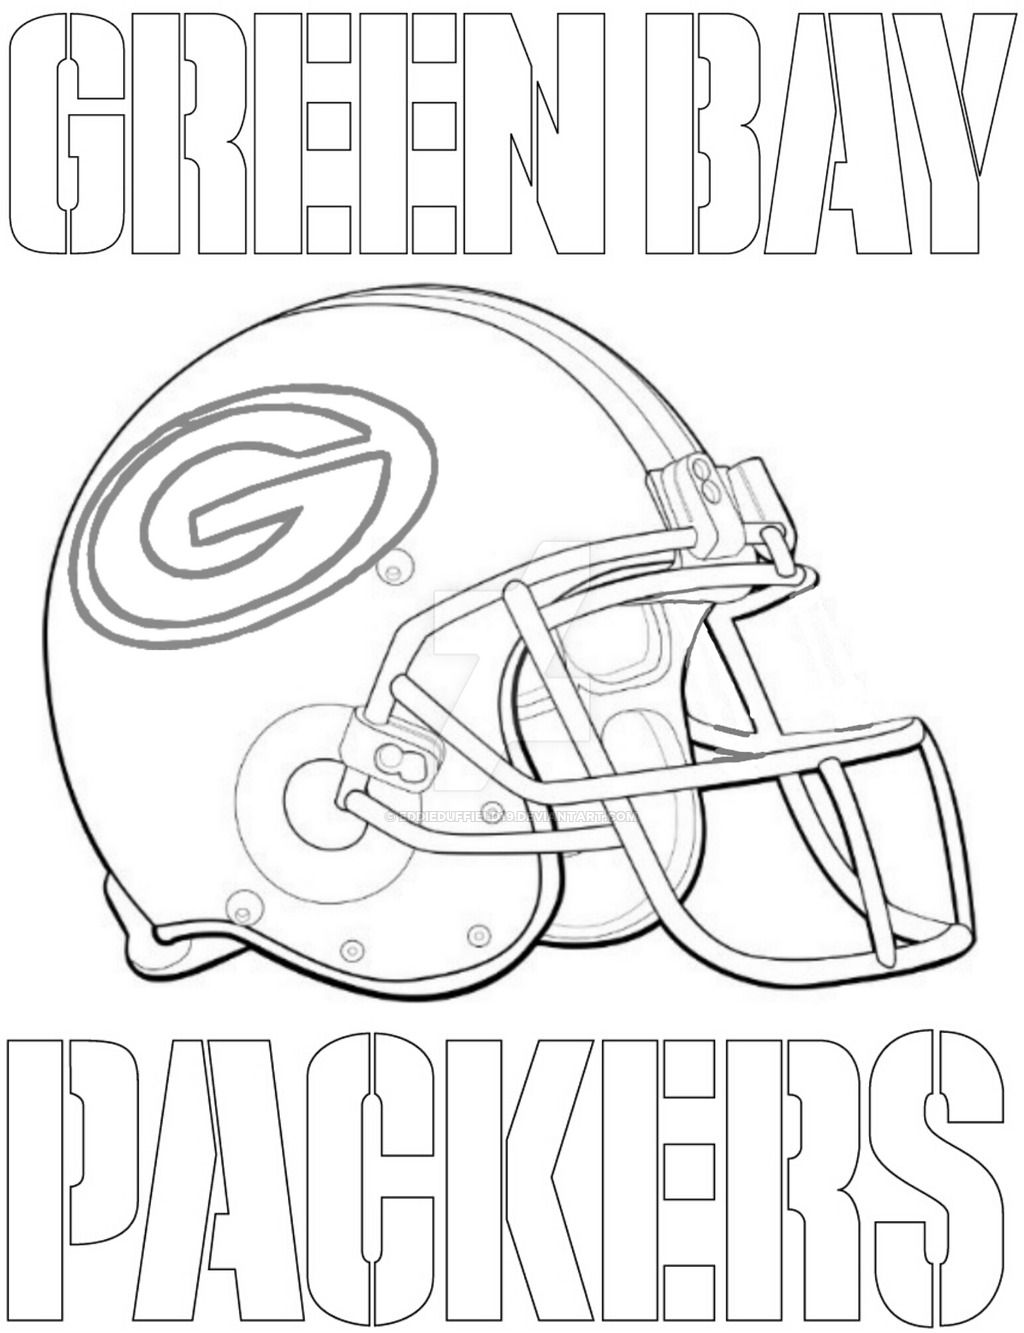 Green Bay Packers Coloring Page Football Coloring Pages Coloring Pages Sports Coloring Pages